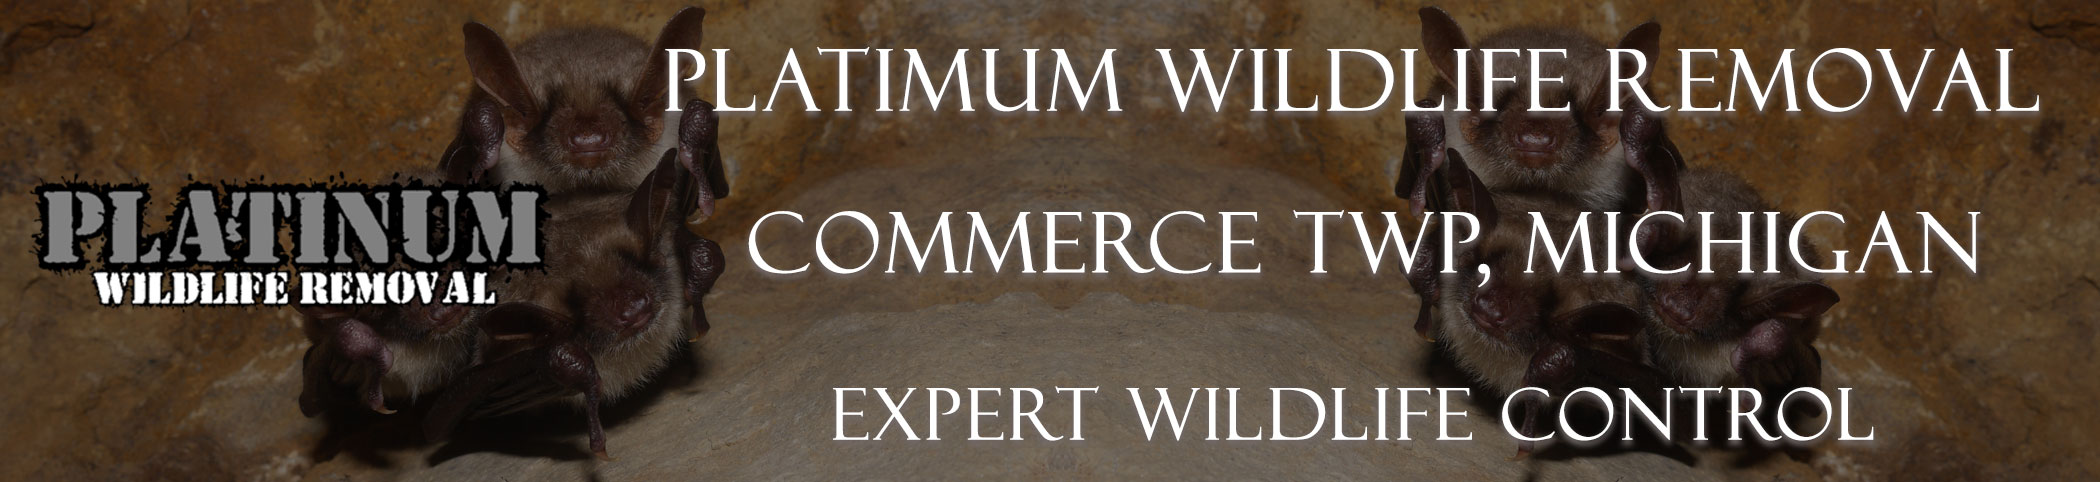 Commerce-TWP-Platinum-Wildlife-Removal-michgan